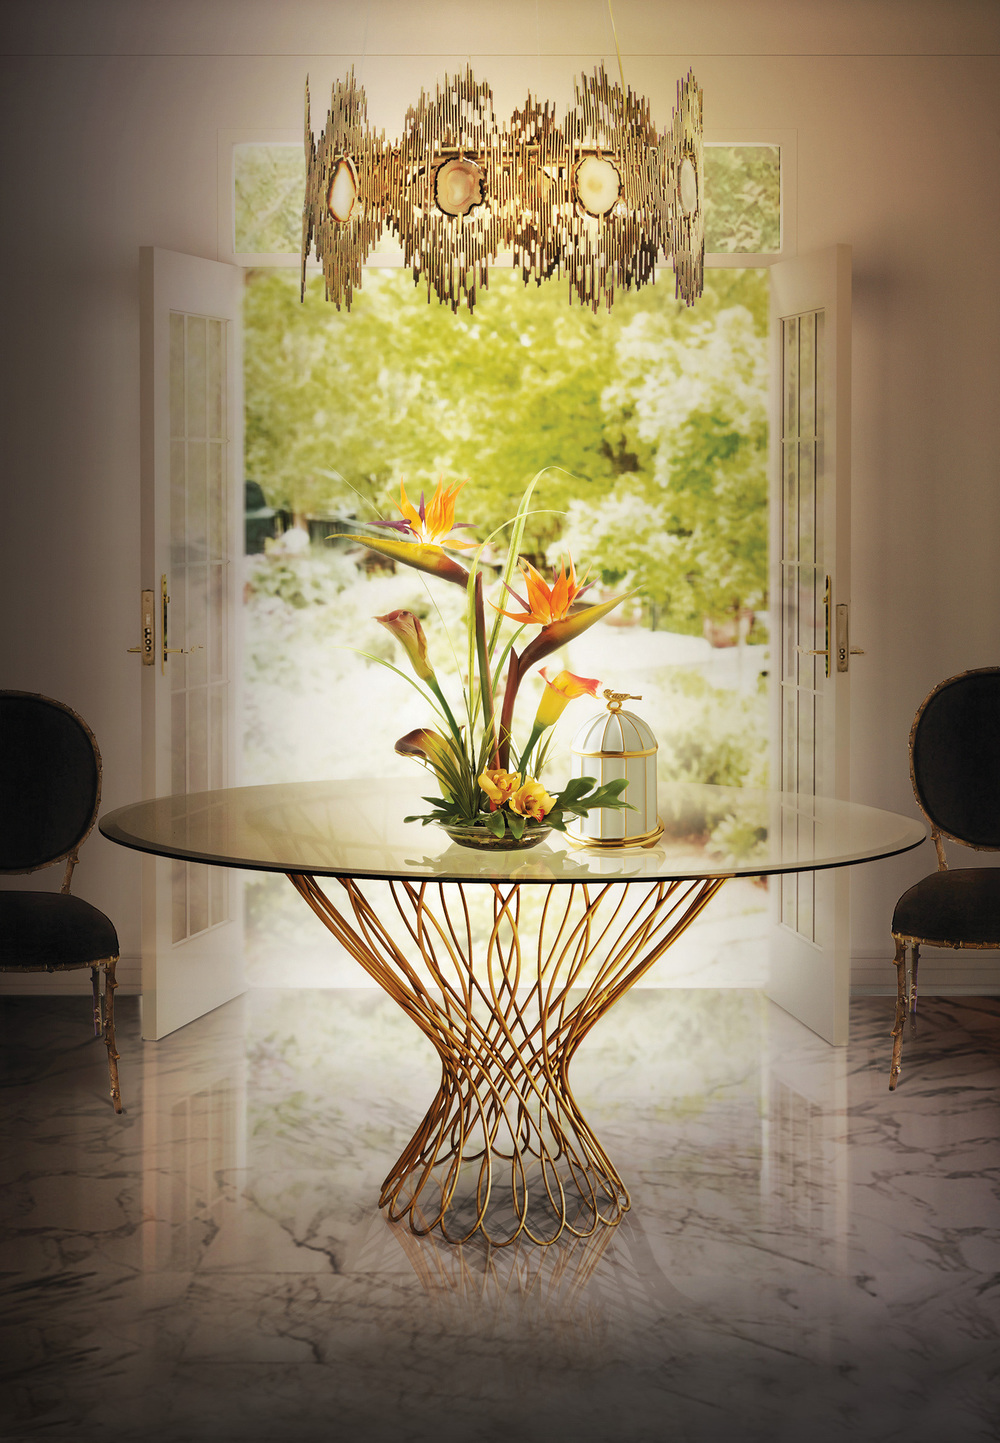 vivre-chandelier-allure-dining-table-enchanted-chair-koket-projects.jpg